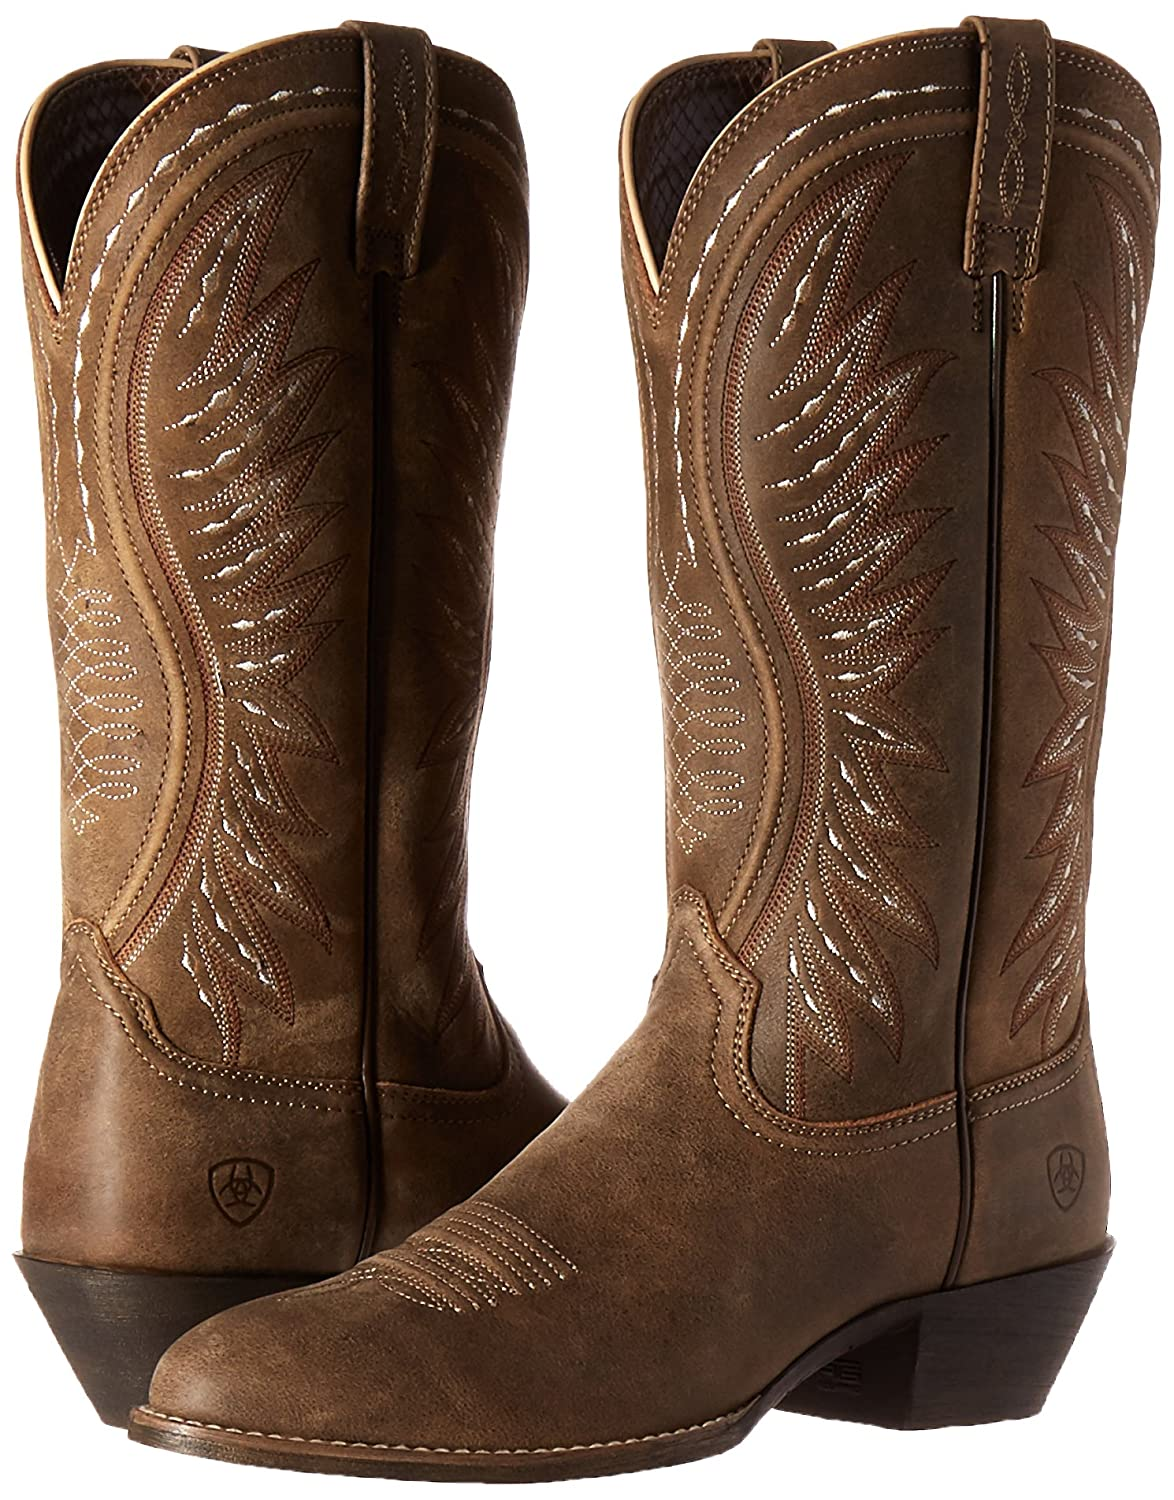 Ariat Women's Ammorette Western Boot B013WSGB4A 8.5 B(M) US|Brown Bomber